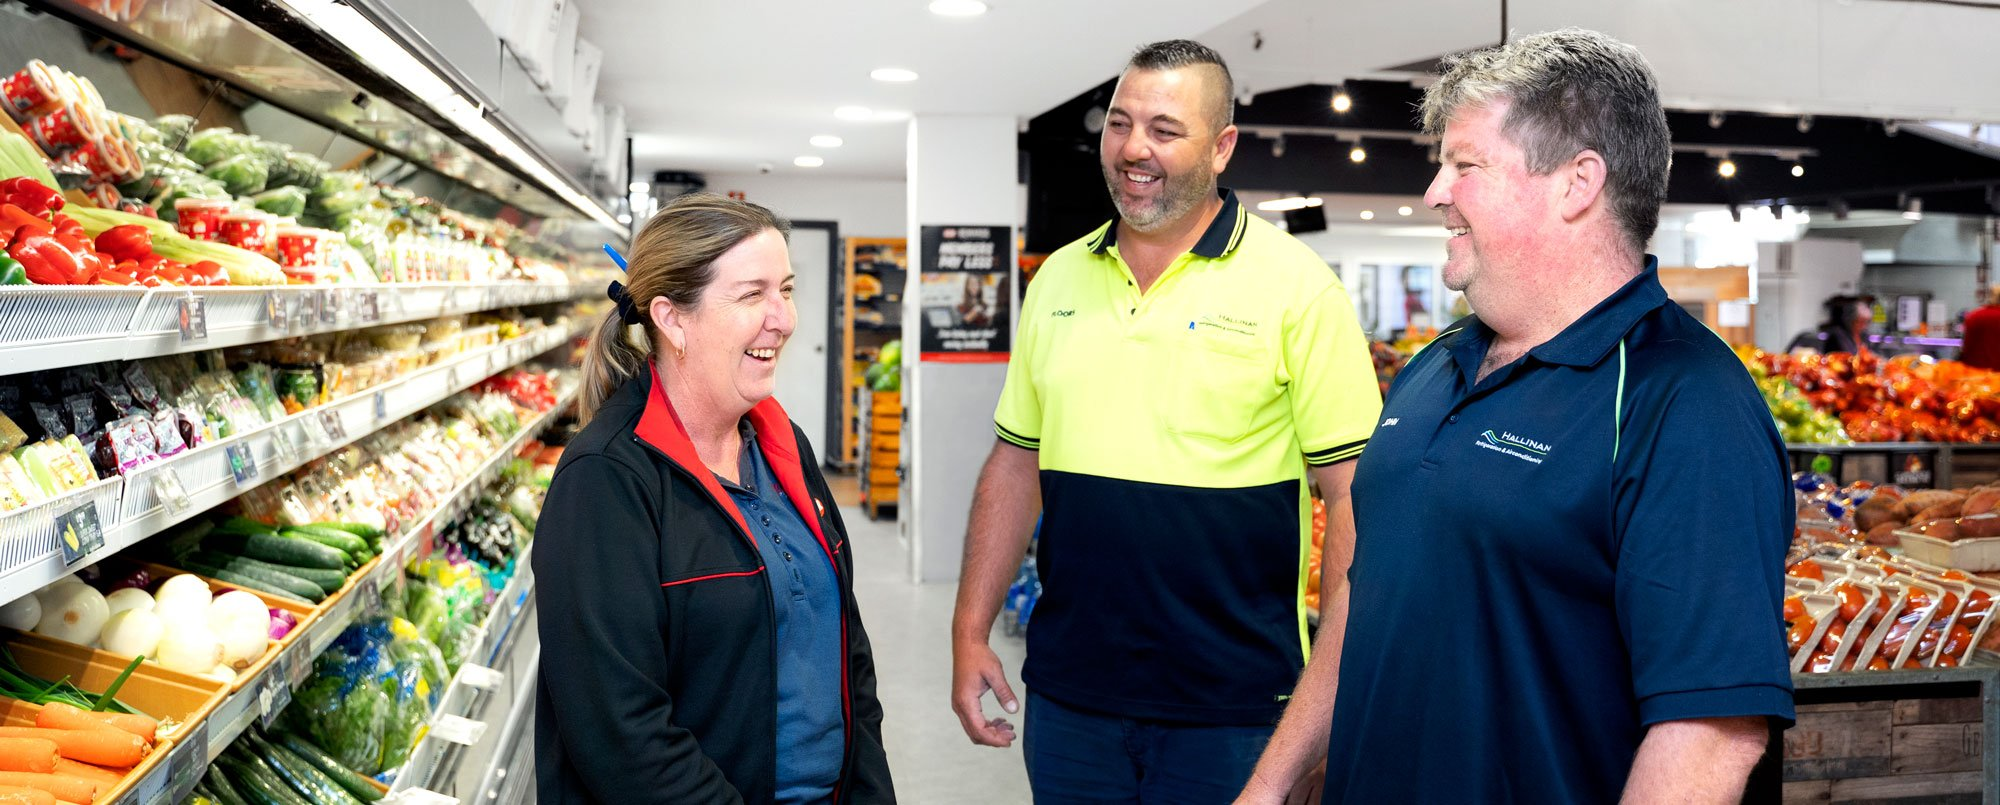 Hallinan staff talking to supermarket manager about refrigeration